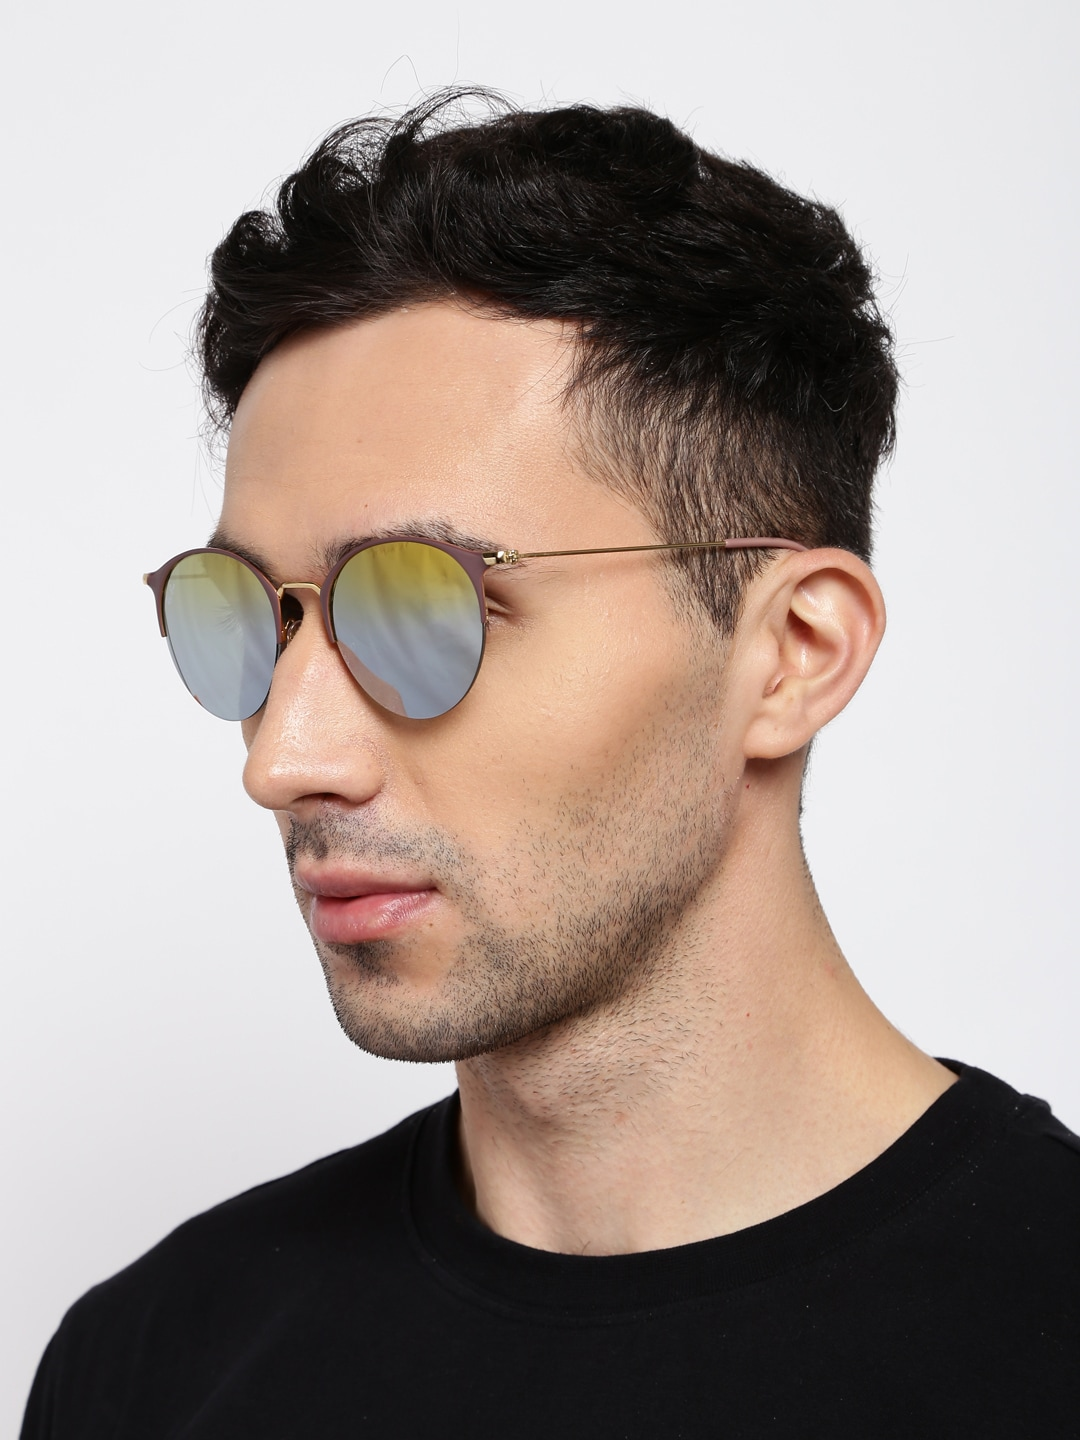 564f874068d Ray Ban Sunglasses Bath Accessories - Buy Ray Ban Sunglasses Bath  Accessories online in India